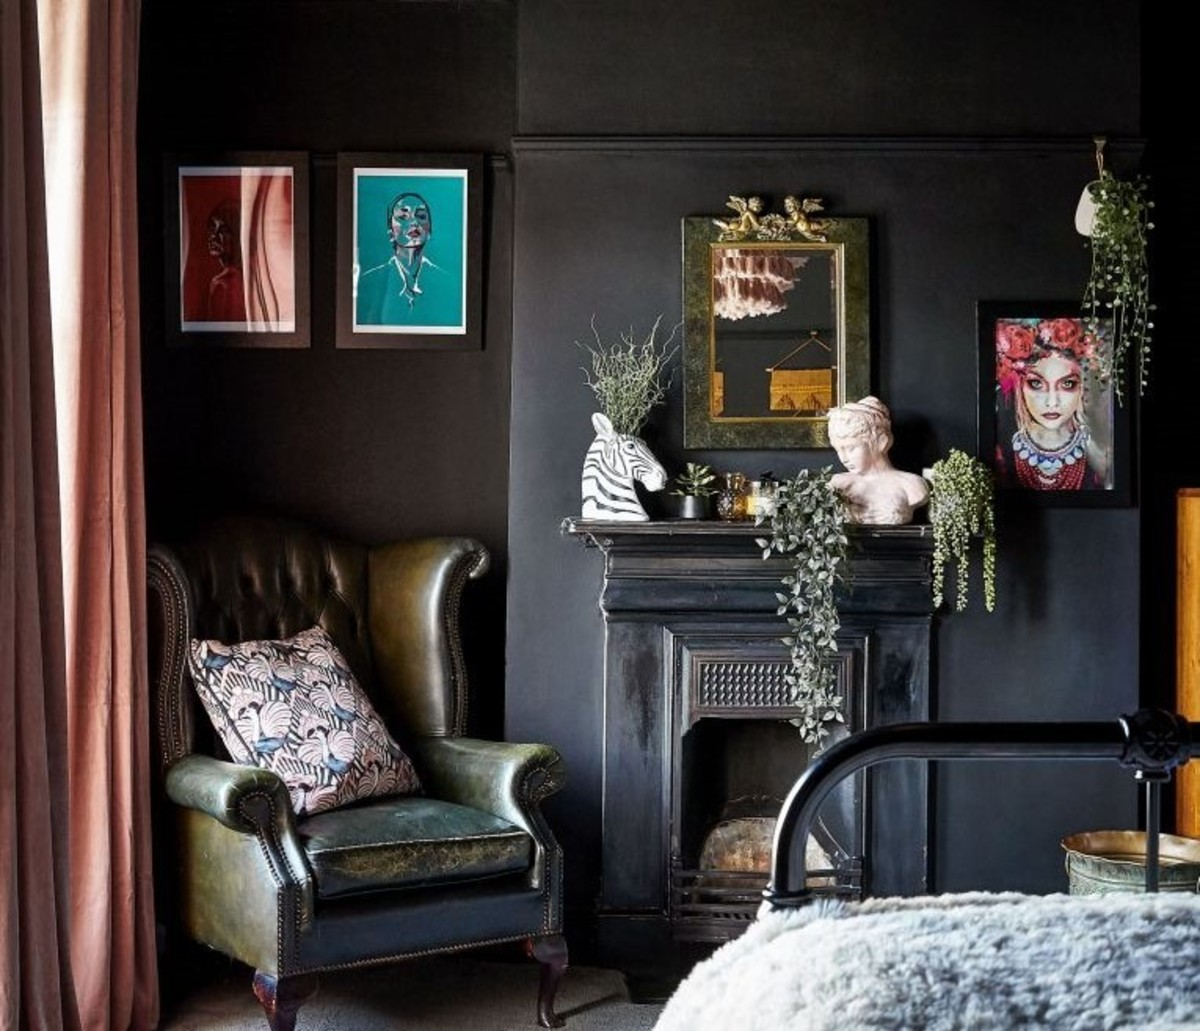 Dark, eclectic spaces are a unique & striking choice.